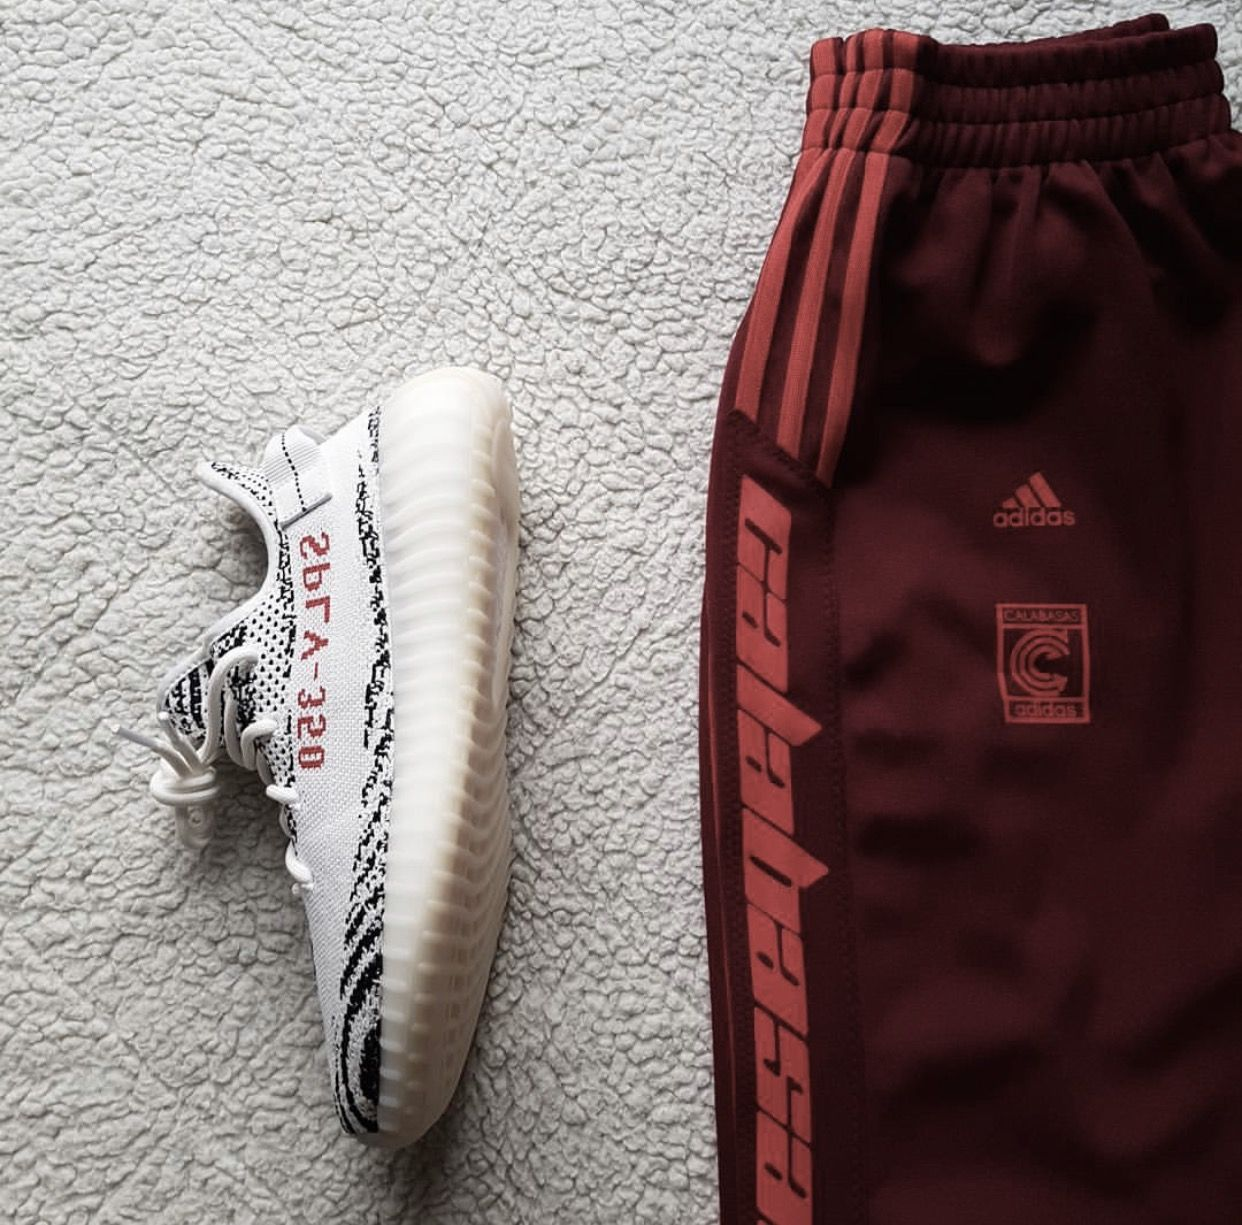 d006f4630 Adidas Yeezy Boost 350 V2 Zebra with all-new Calabasas sweat pants.